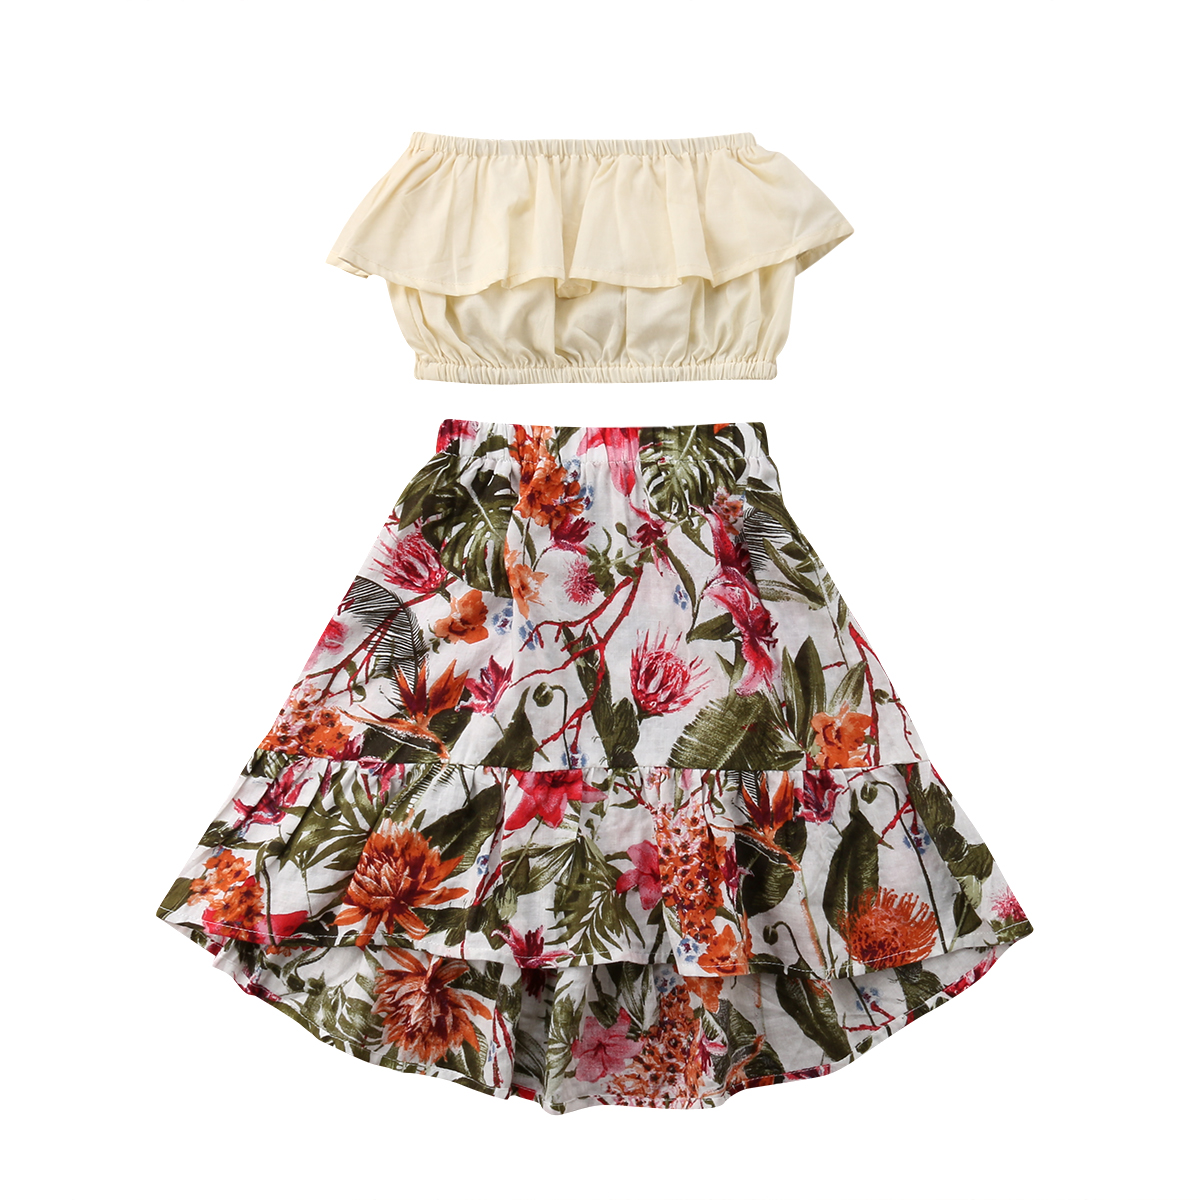 2pcs Toddler Infant Baby Girls Clothes Off Shoulder Ruffle Bob Tube Top Floral Maxi Skirt Kids Summer Clothes Baby Girl 1-7T купить в Москве 2019